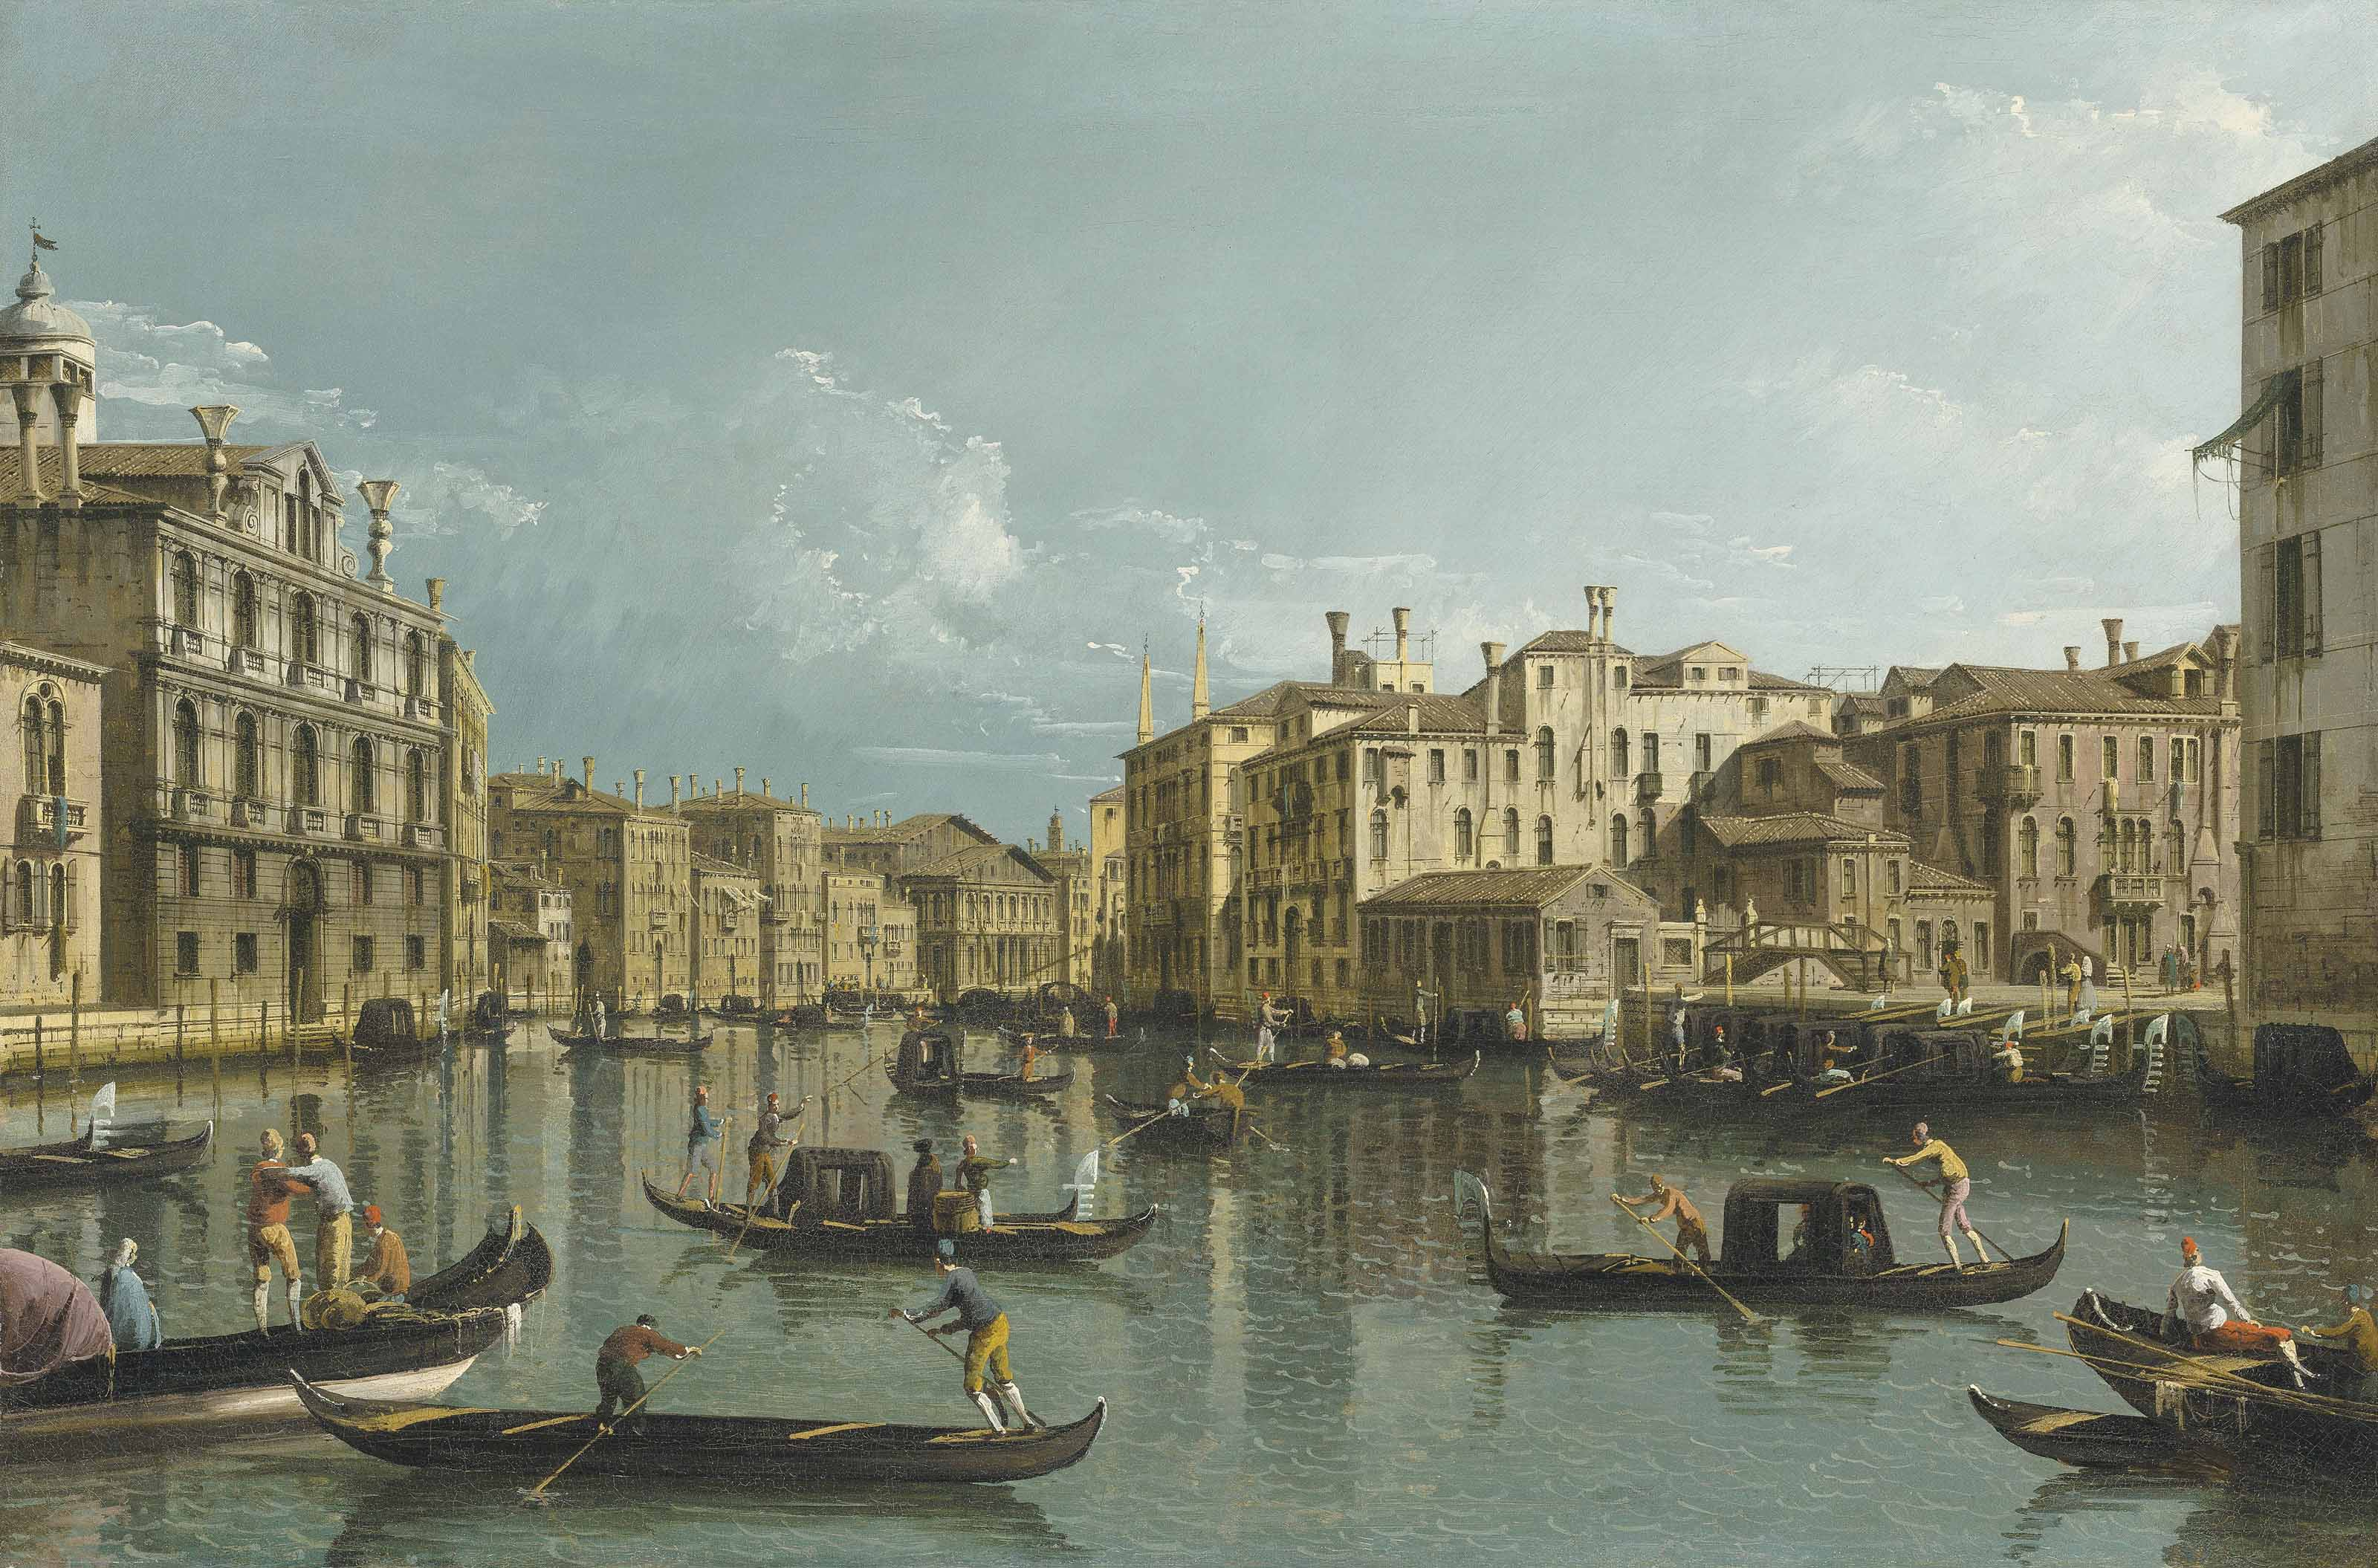 The Grand Canal, Venice, looking North from the Palazzo Contarini dagli Scrigni to the Palazzo Rezzonico